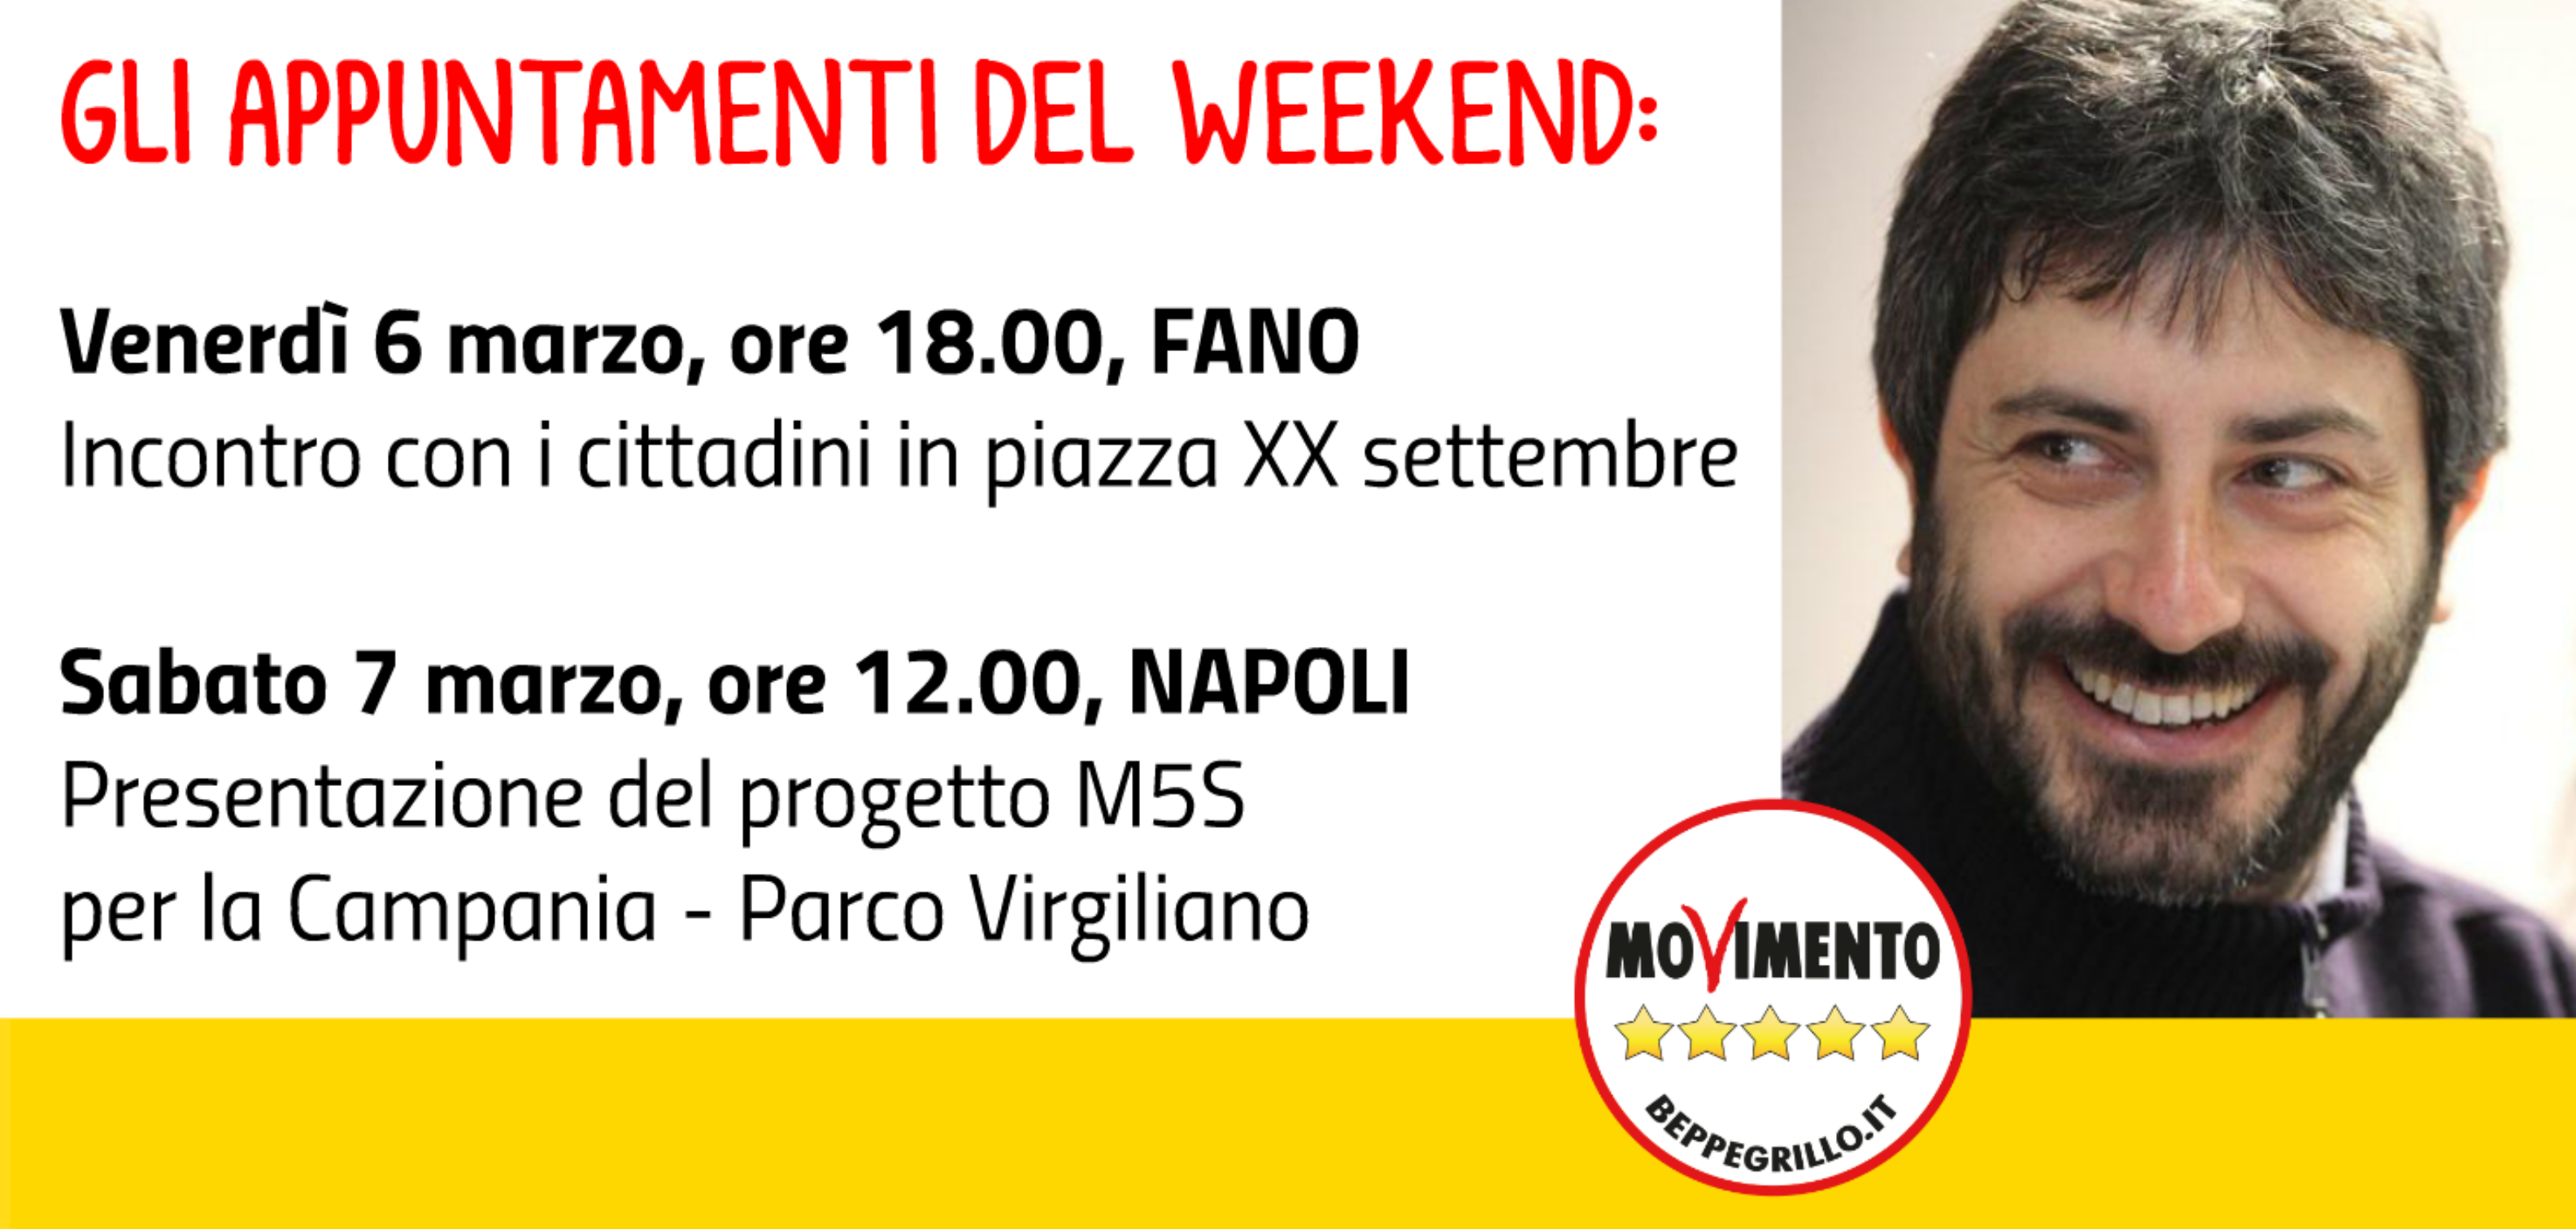 Appuntamenti-weekend